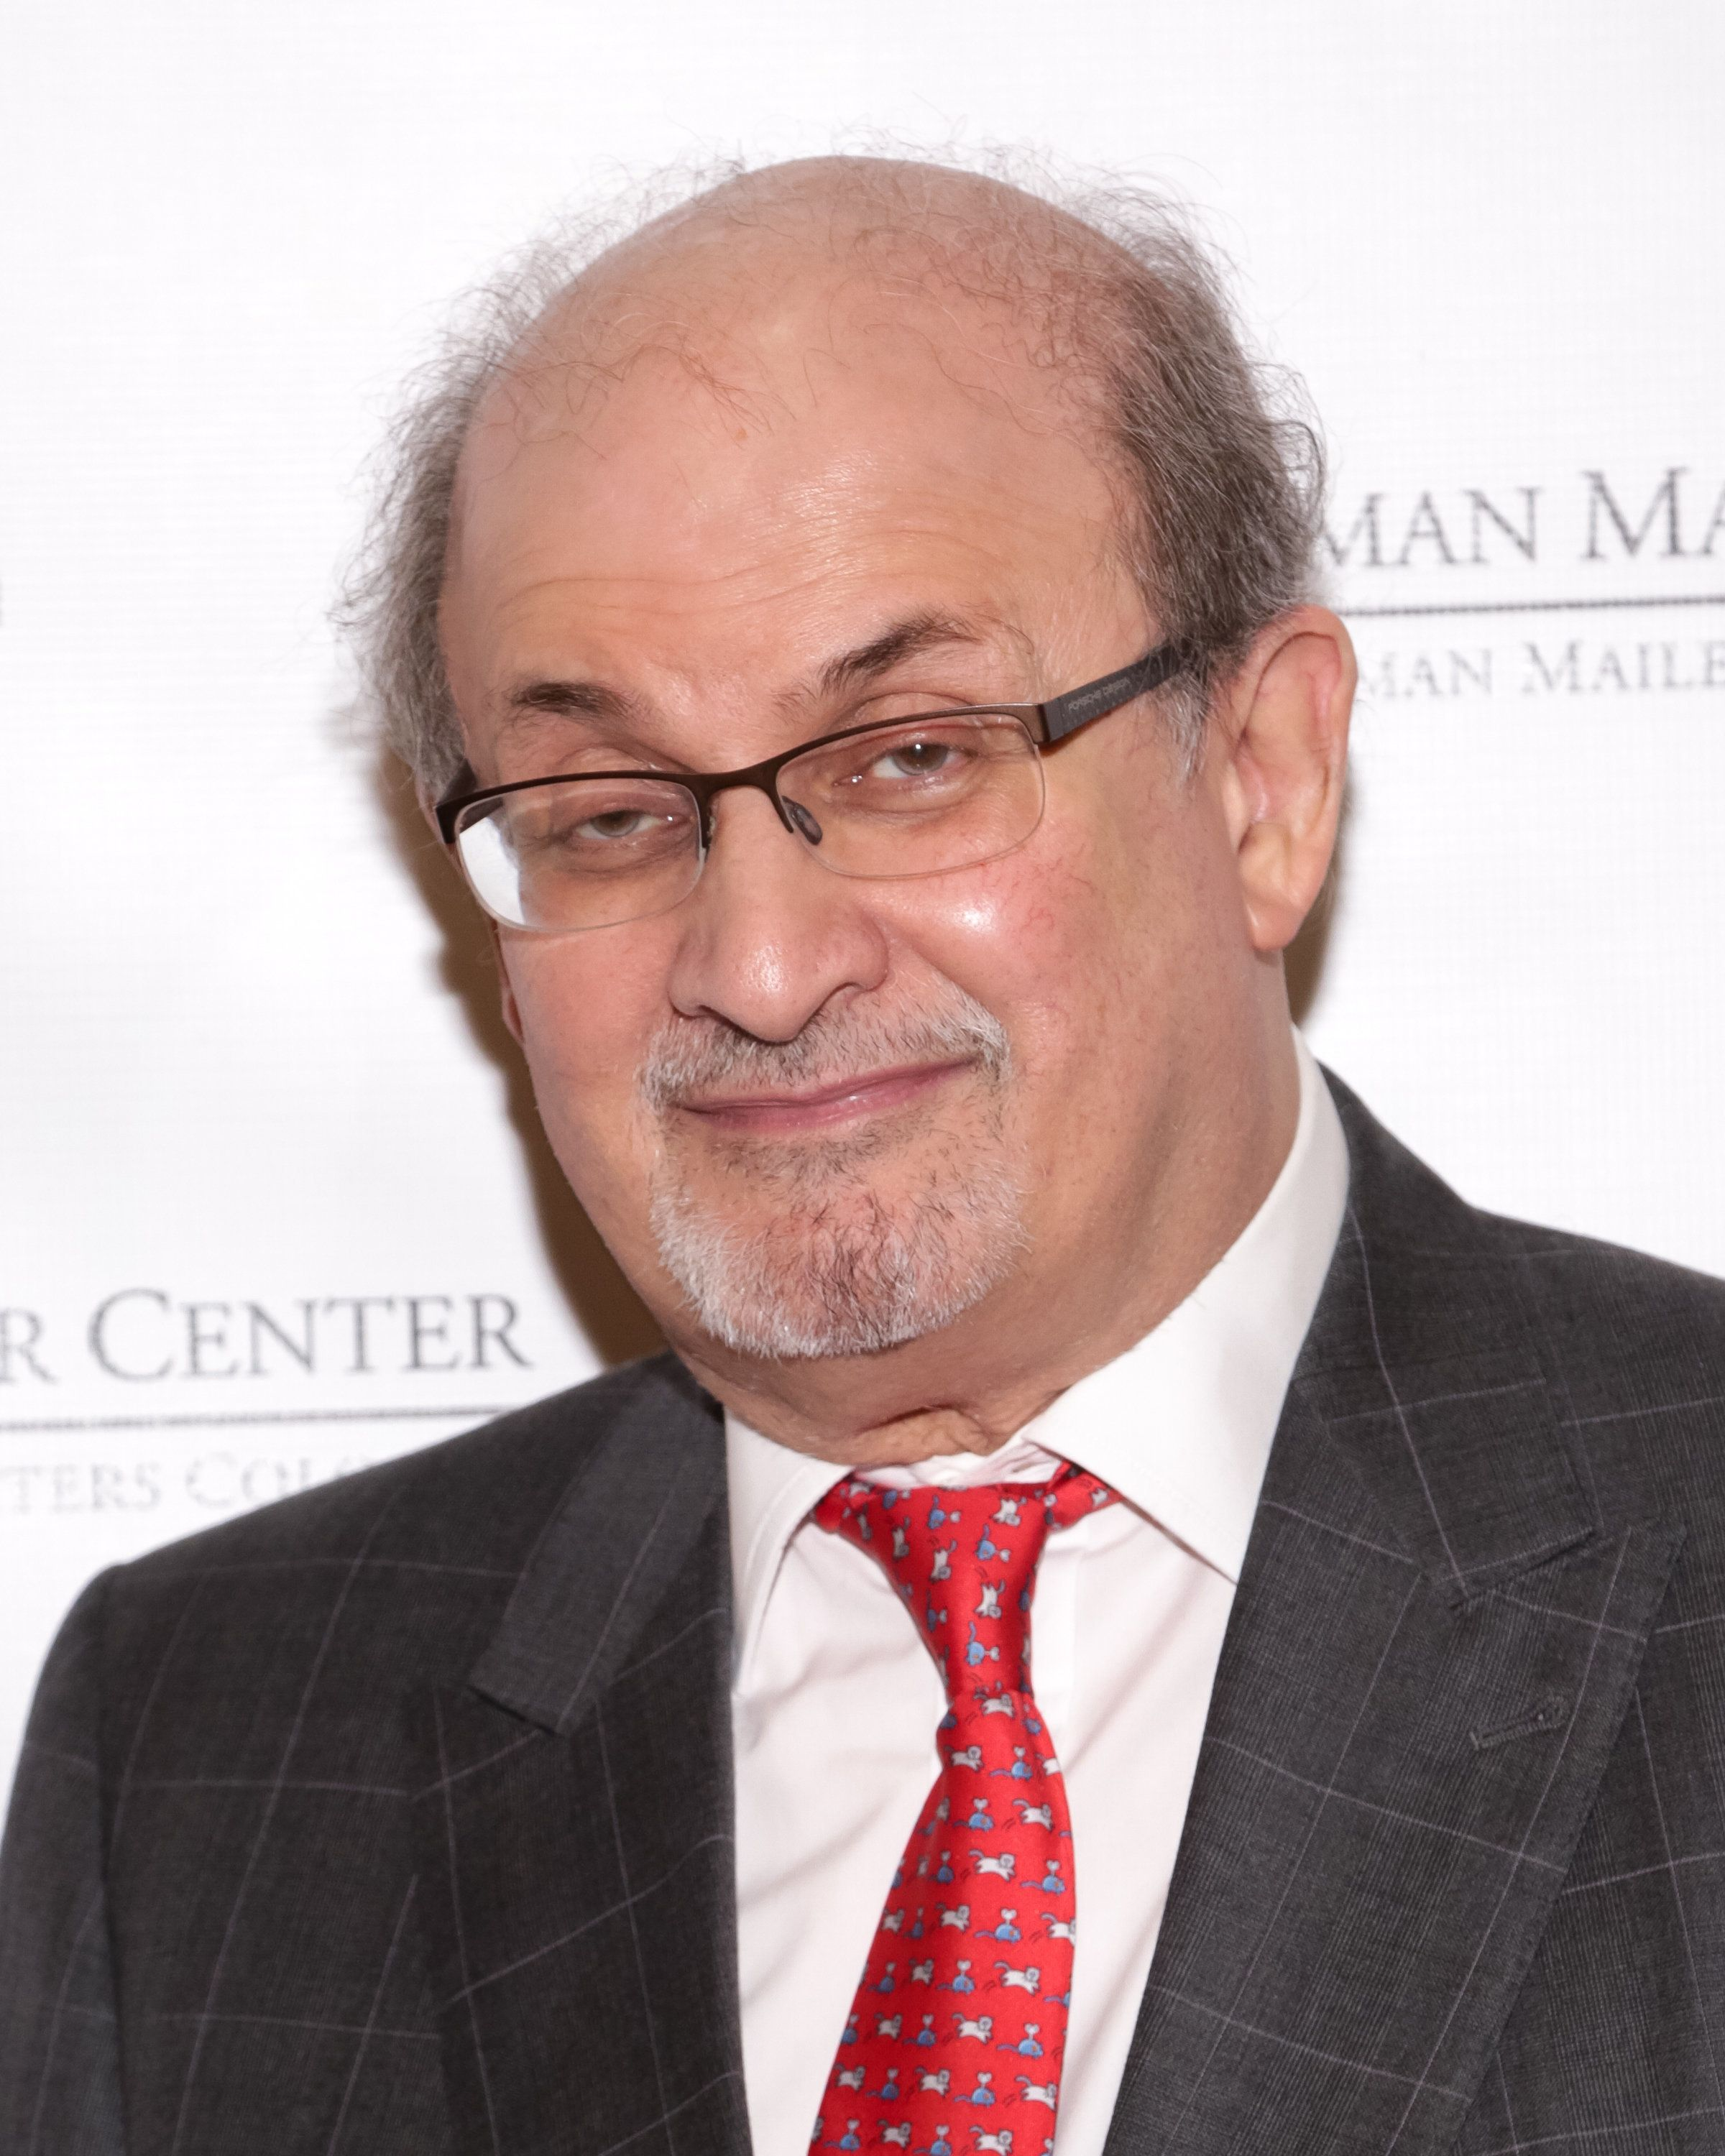 NEW YORK, NY - DECEMBER 10:  Event honoree/writer Salman Rushdie attends the Norman Mailer Center's Lifetime Achievement Award held at Pratt Institute on December 10, 2015 in New York City.  (Photo by Brent N. Clarke/WireImage)